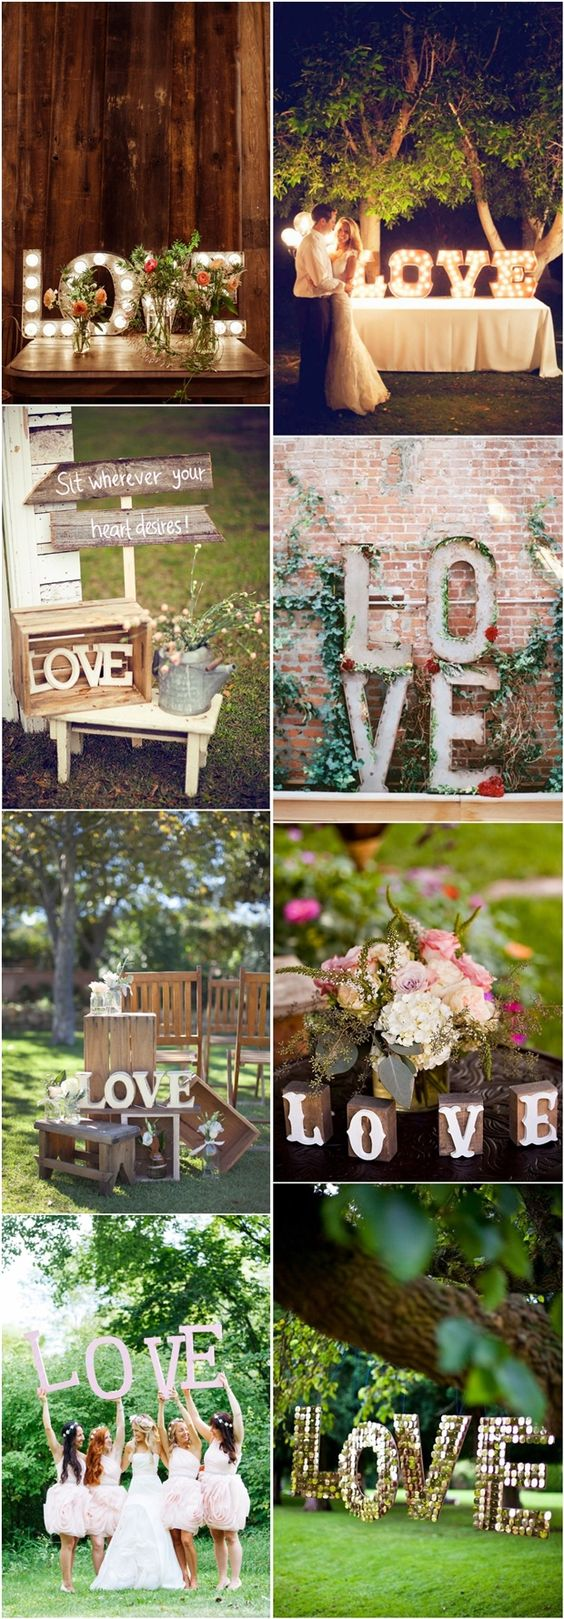 35 Awesome LOVE Letters Wedding Decor Ideas | http://www.deerpearlflowers.com/35-awesome-love-letters-wedding-decor-ideas/: